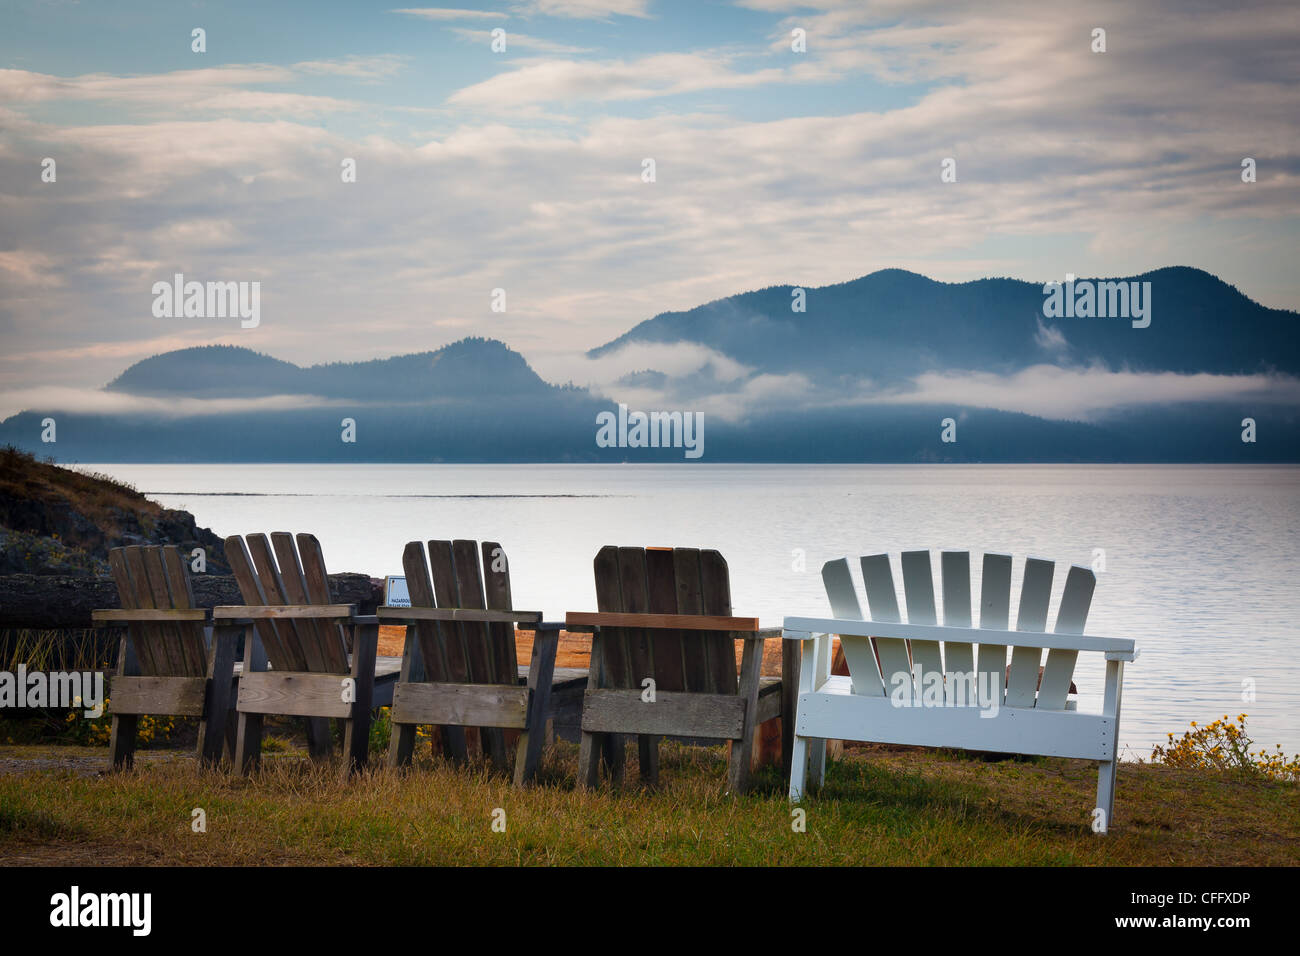 Doe Bay on Orcas Island, the largest of the San Juan Islands in Washington state - Stock Image